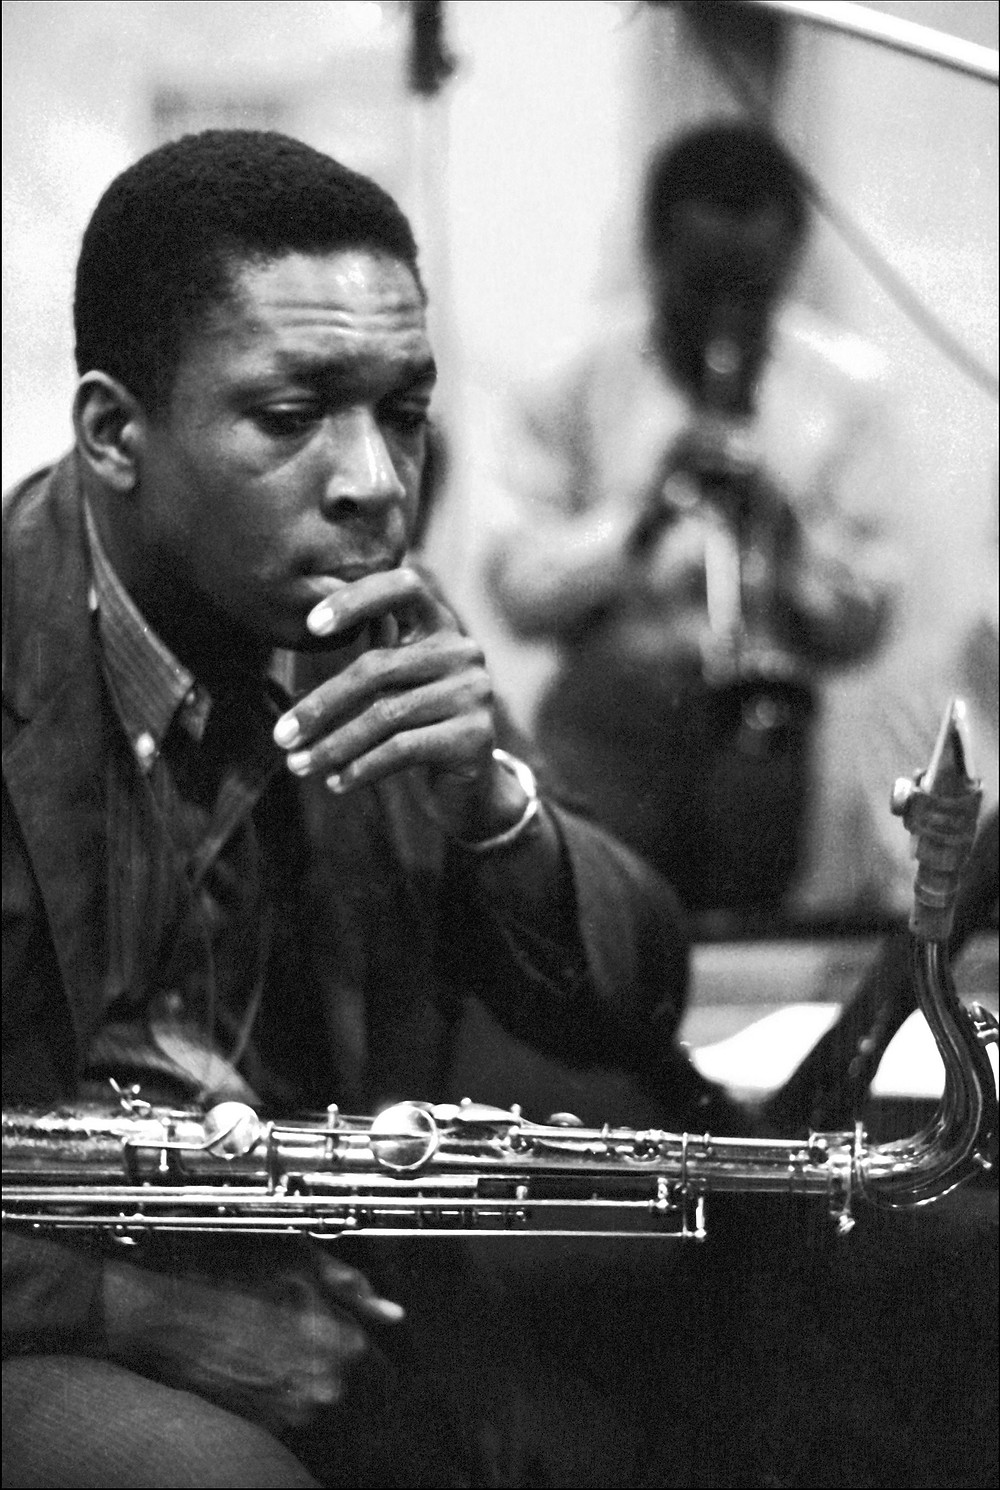 Letting Coltrane Be Coltrane - Christian Rosselli Voice Over